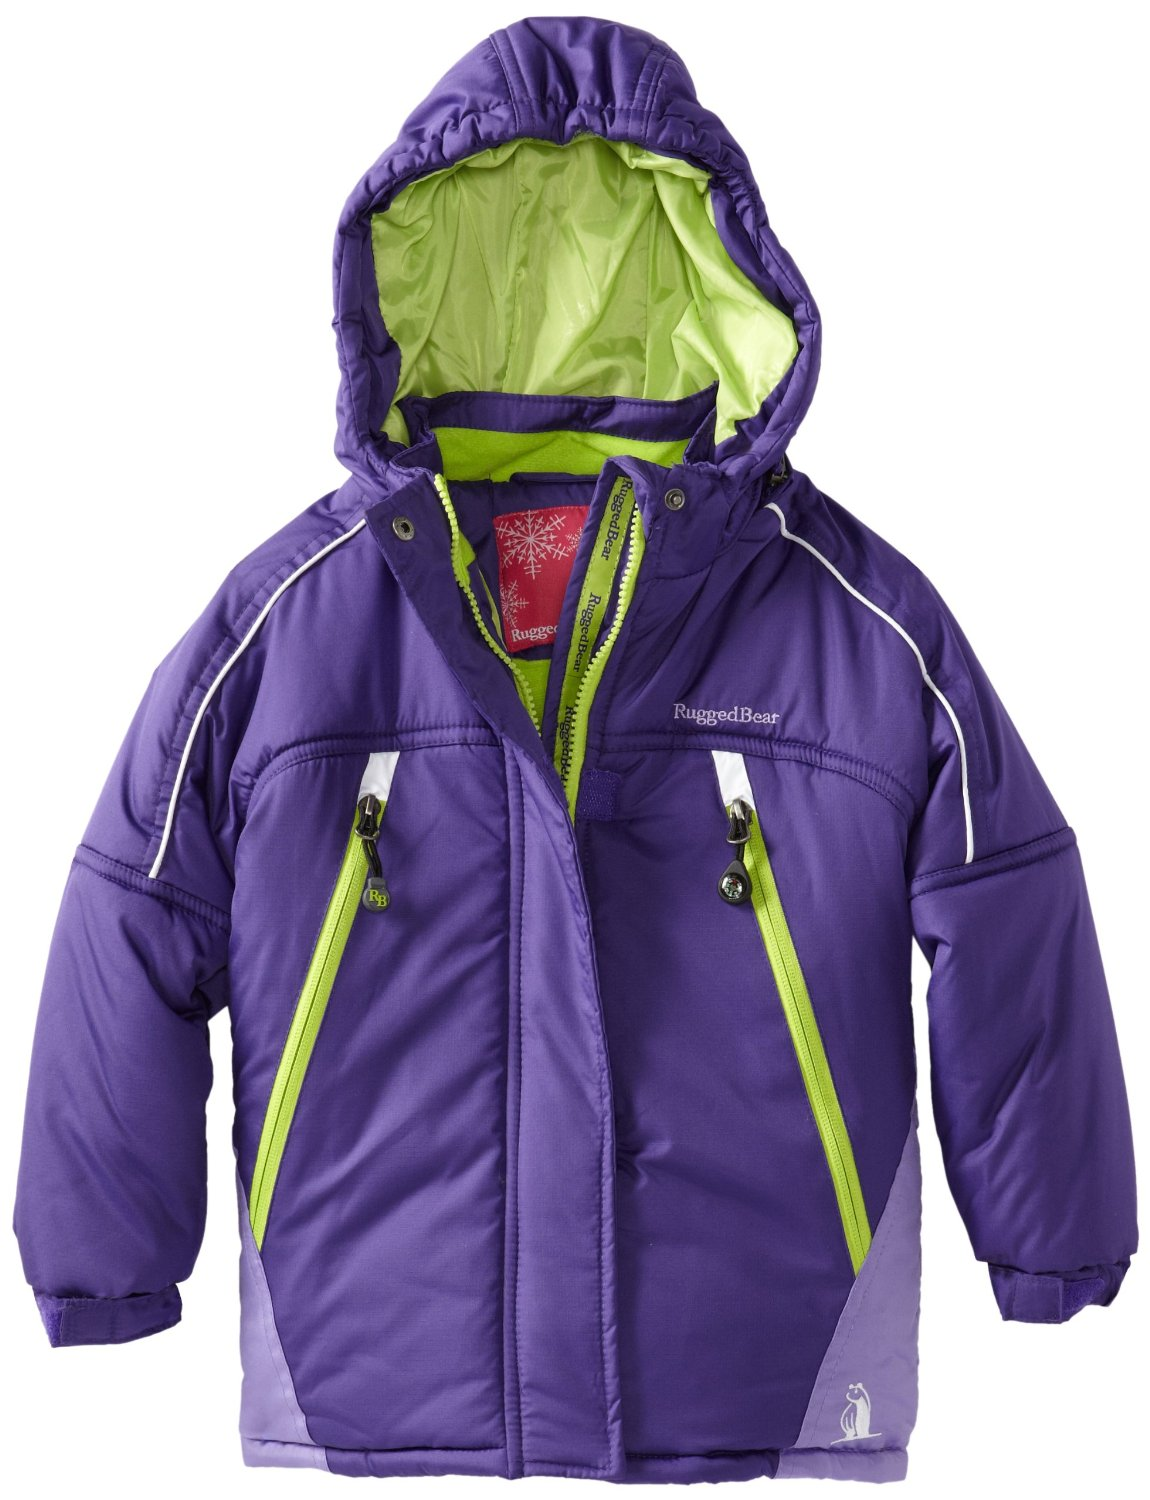 Rugged Bear Infant Girls Color Block Purple Snow Ski Jacket / Coat 12M 18M 24M at Sears.com